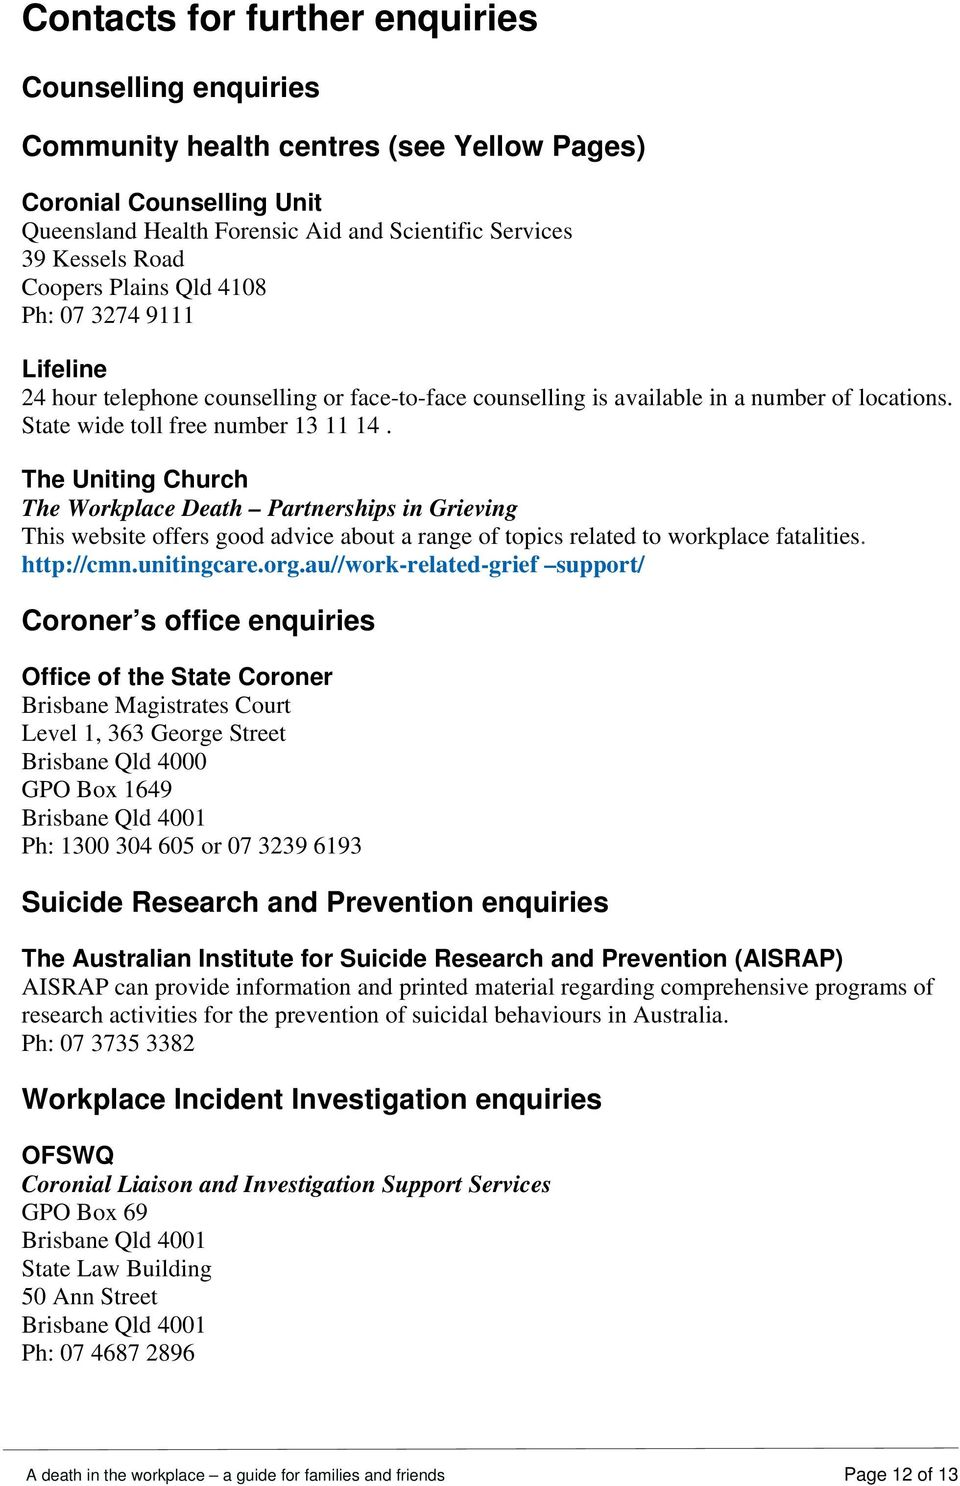 The Uniting Church The Workplace Death Partnerships in Grieving This website offers good advice about a range of topics related to workplace fatalities. http://cmn.unitingcare.org.